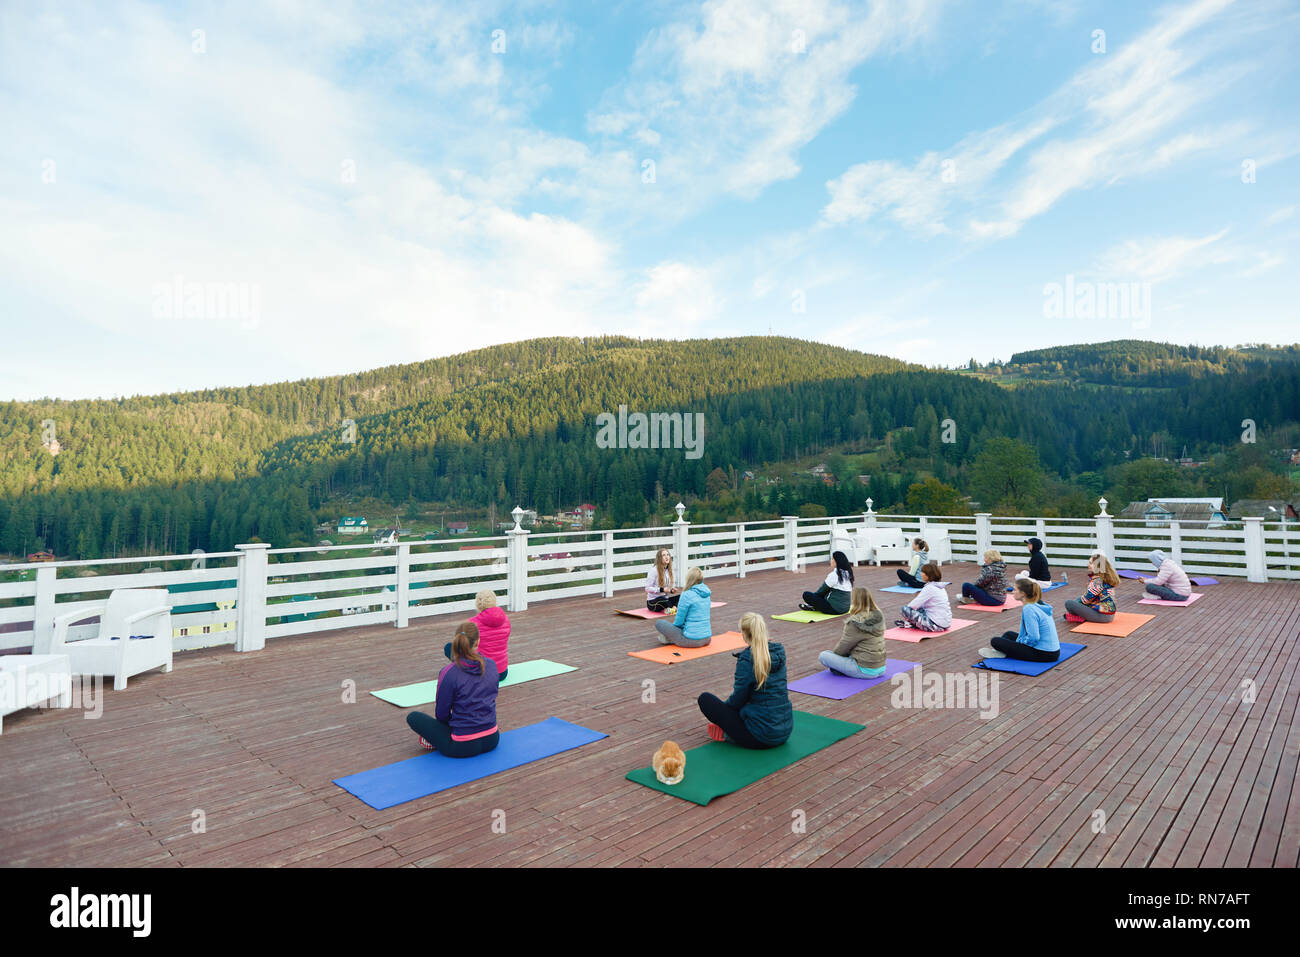 Group of people doing yoga together with coach on fresh air. People sitting in lotus pose observing amazing view of mountains. Women practicing on yoga mats, wearing in sportswear. - Stock Image